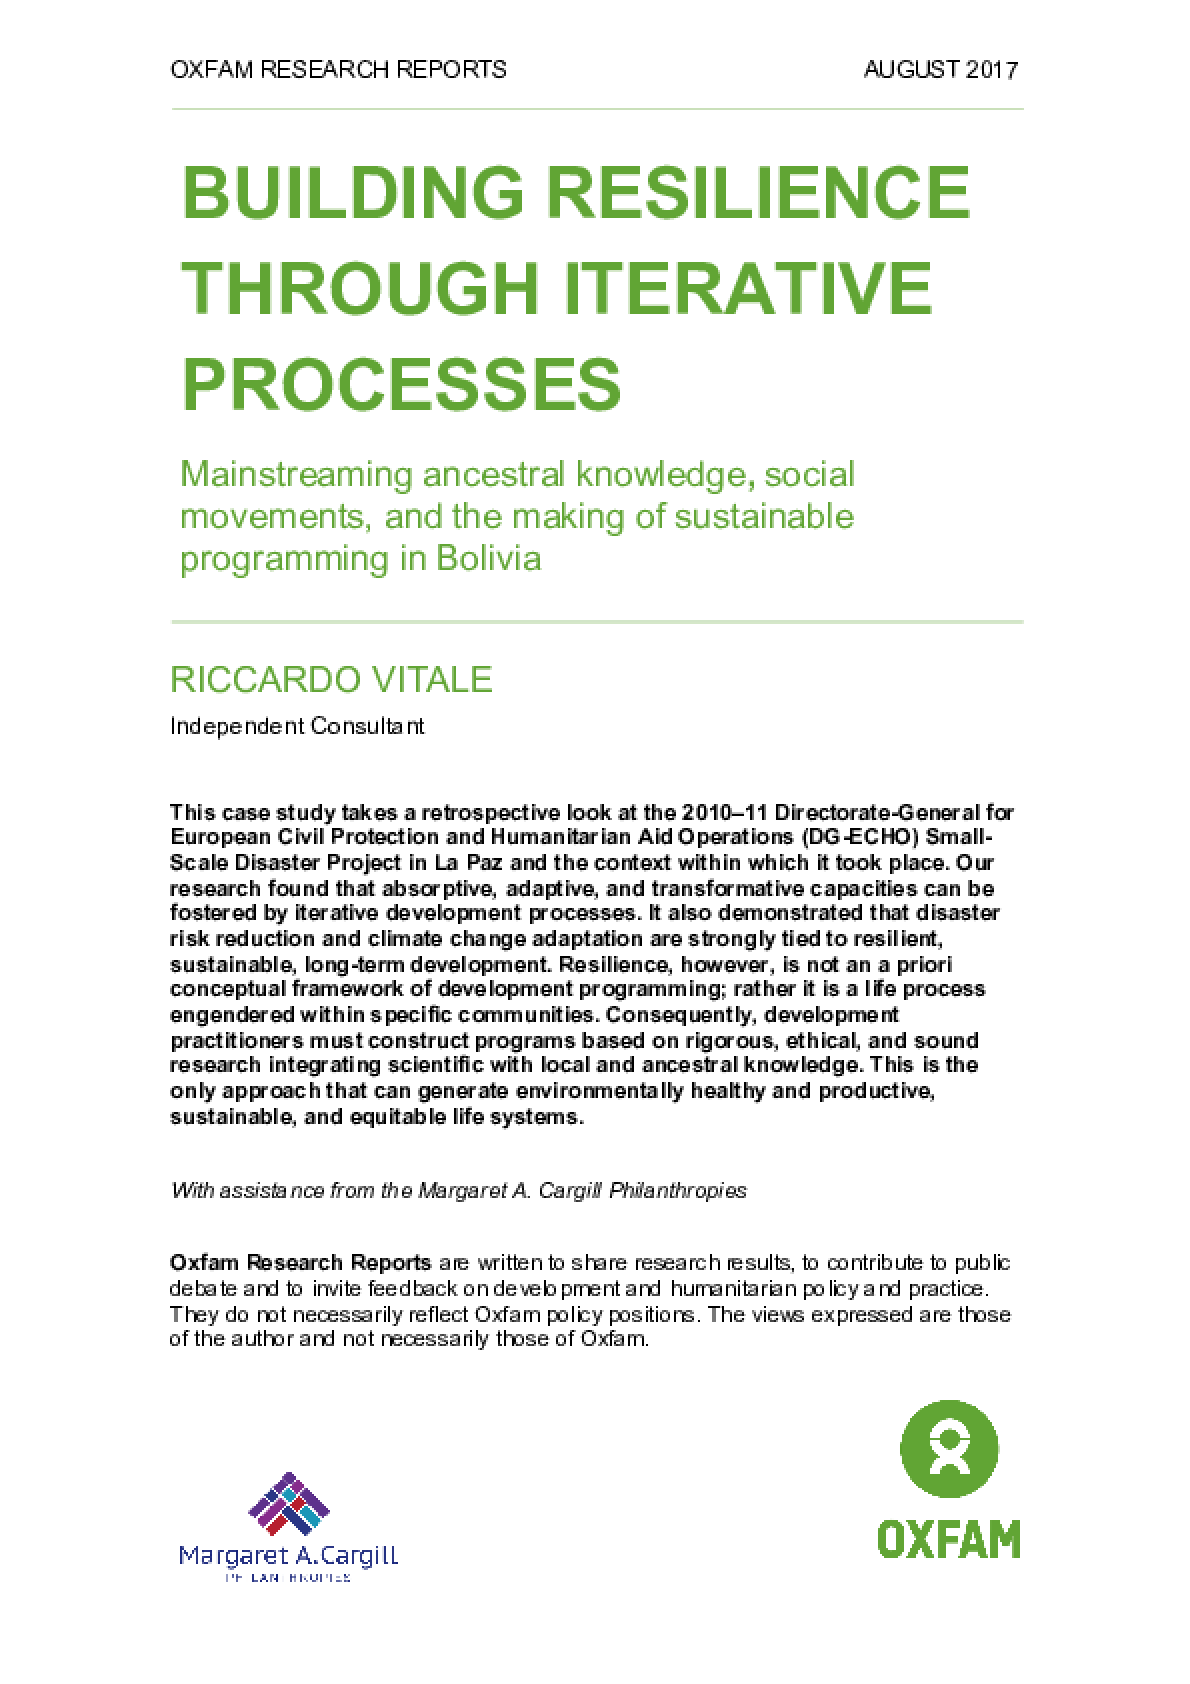 Building Resilience through Iterative Processes: Mainstreaming ancestral knowledge, social movements, and the making of sustainable programming in Bolivia